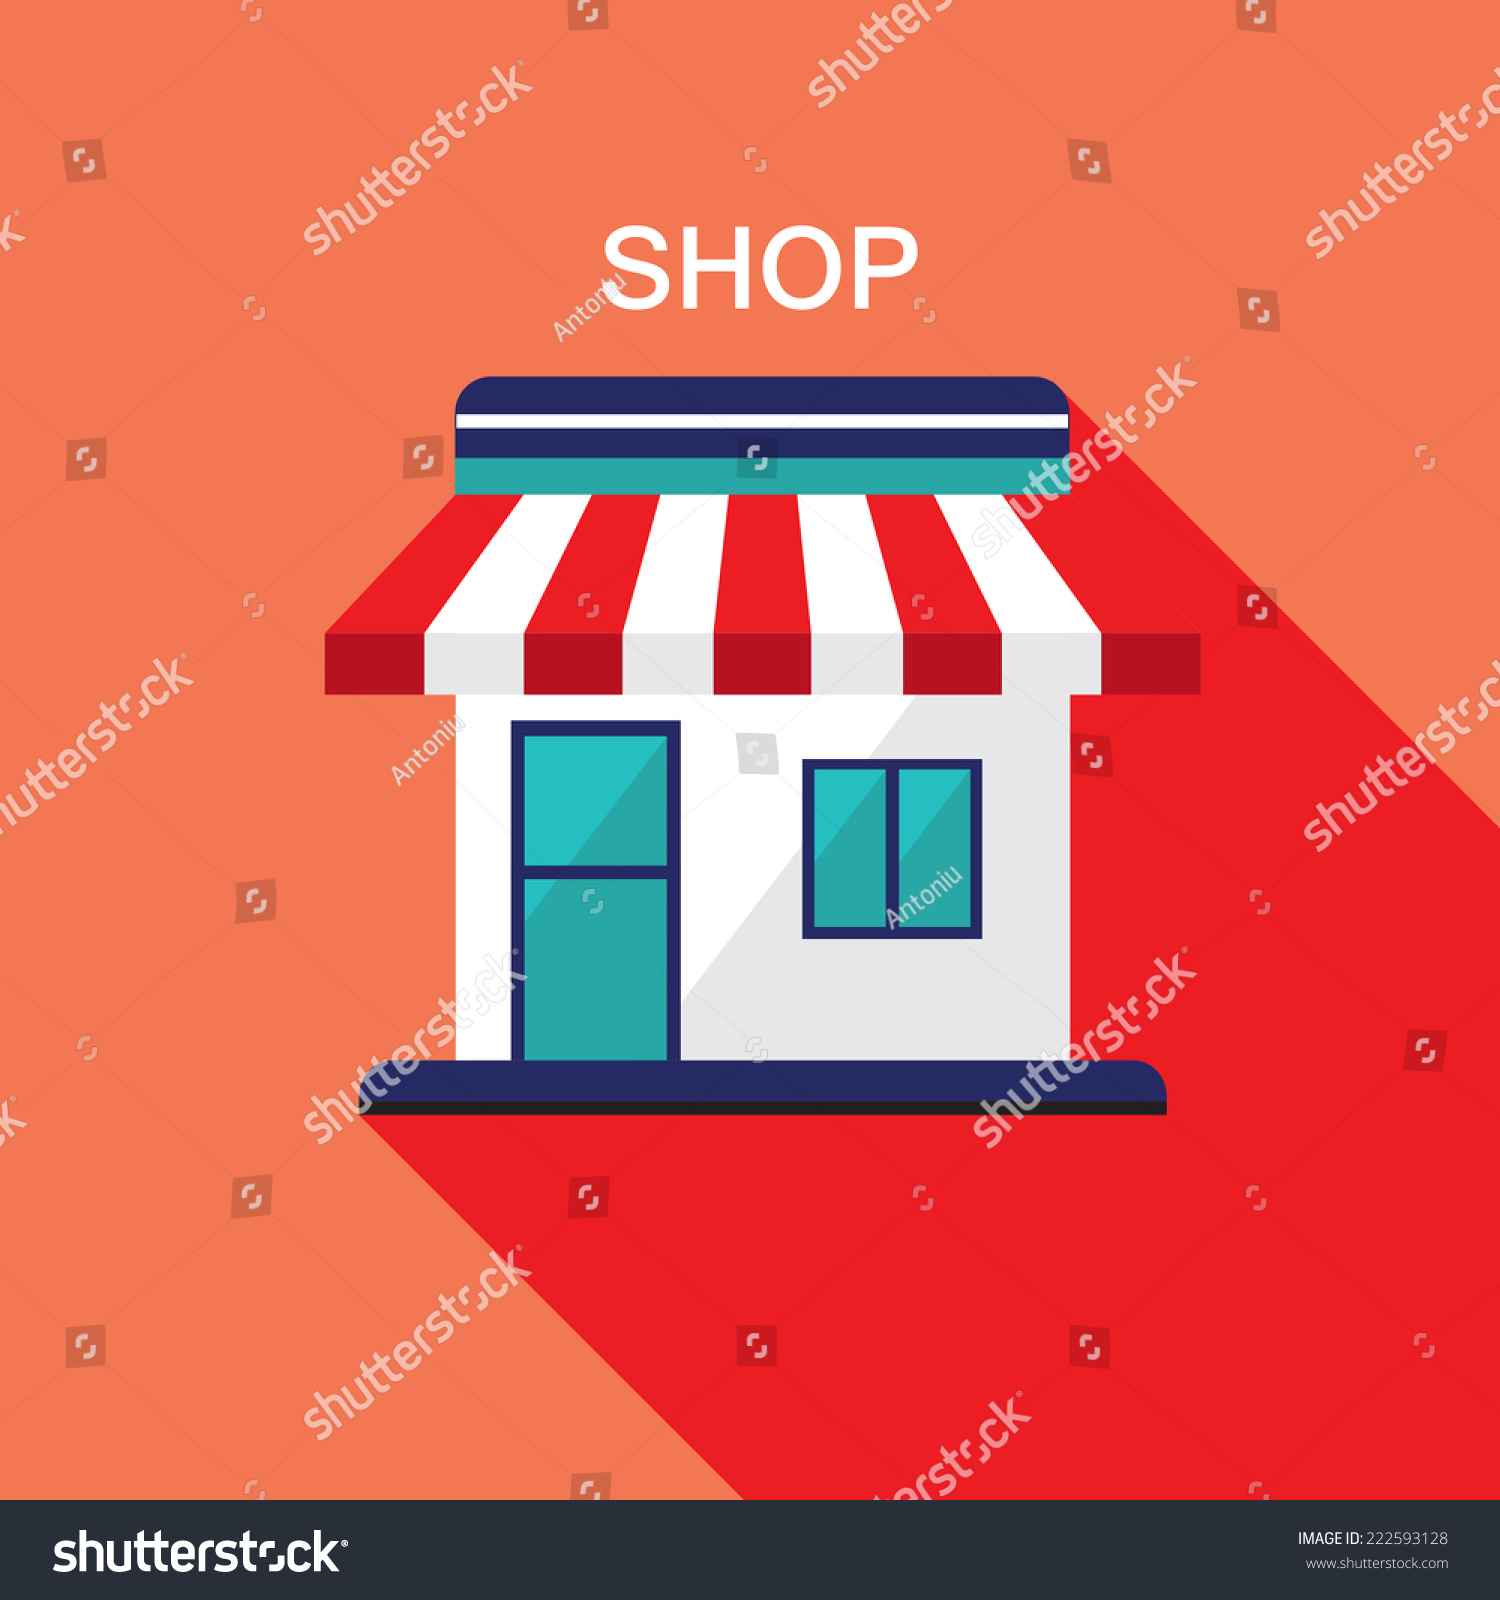 Design Online Shop Shop Front Modern Flat Design Facade Stock Vector Royalty Free